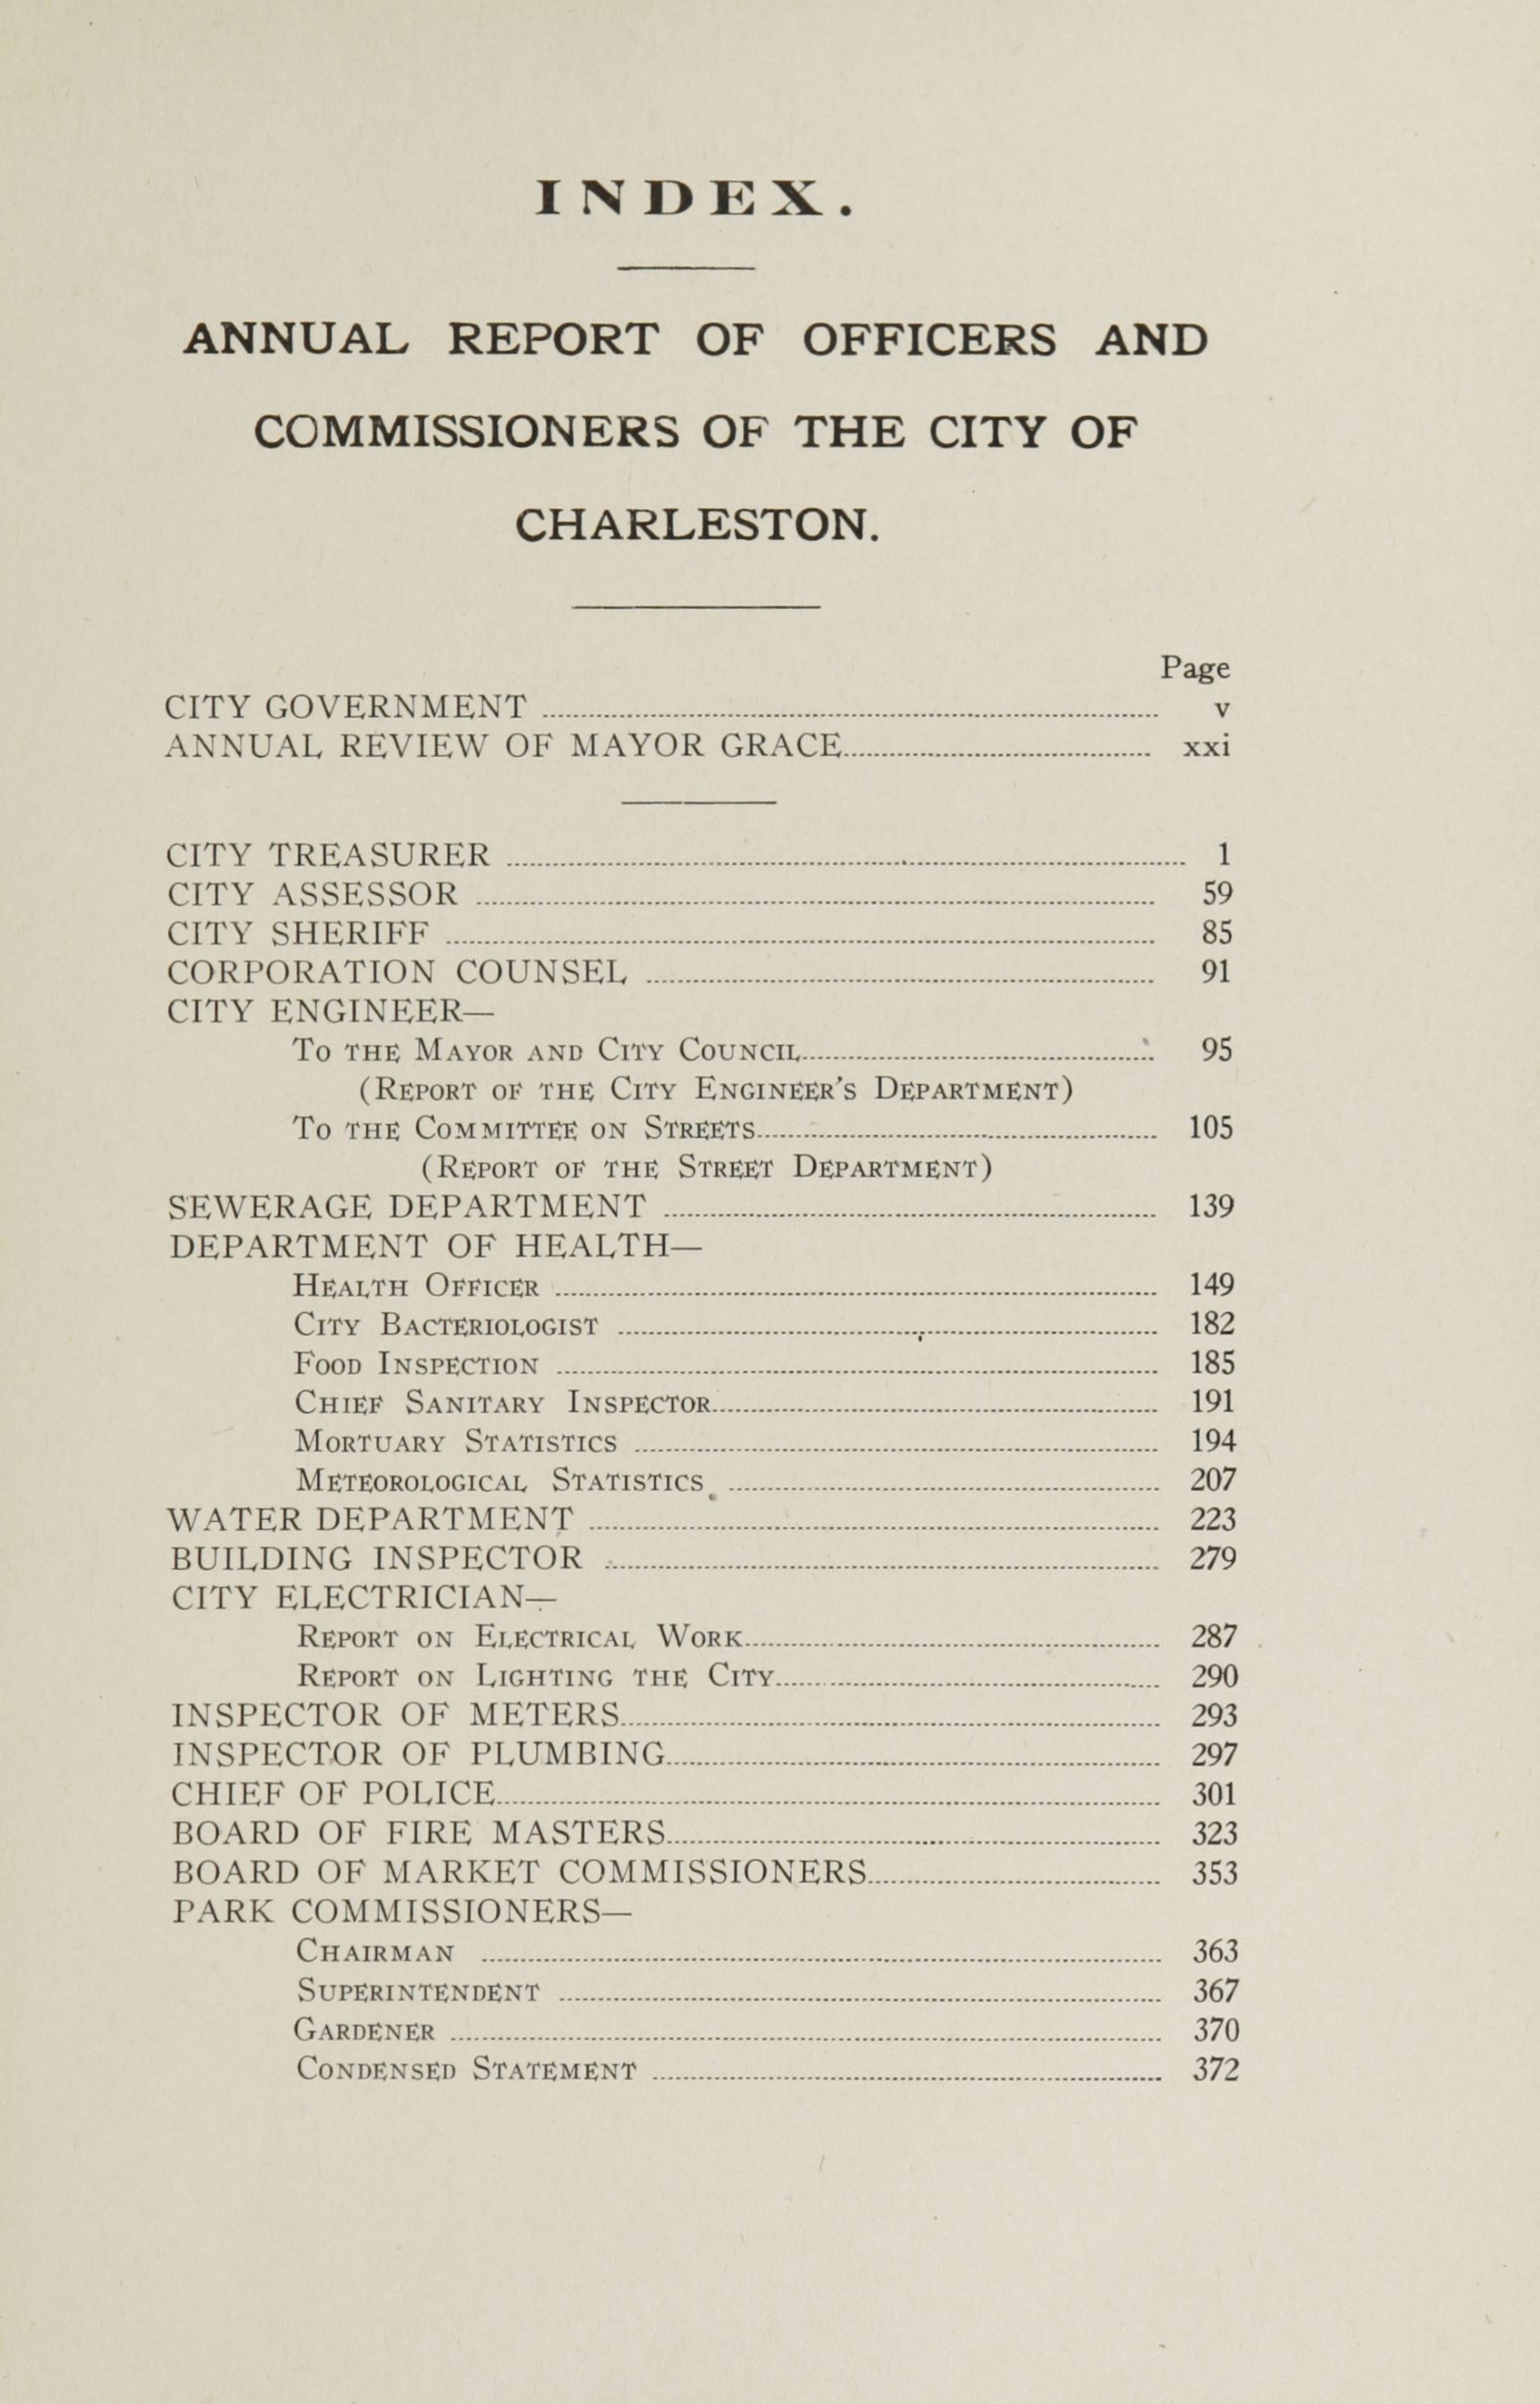 Charleston Yearbook, 1920, page xxix